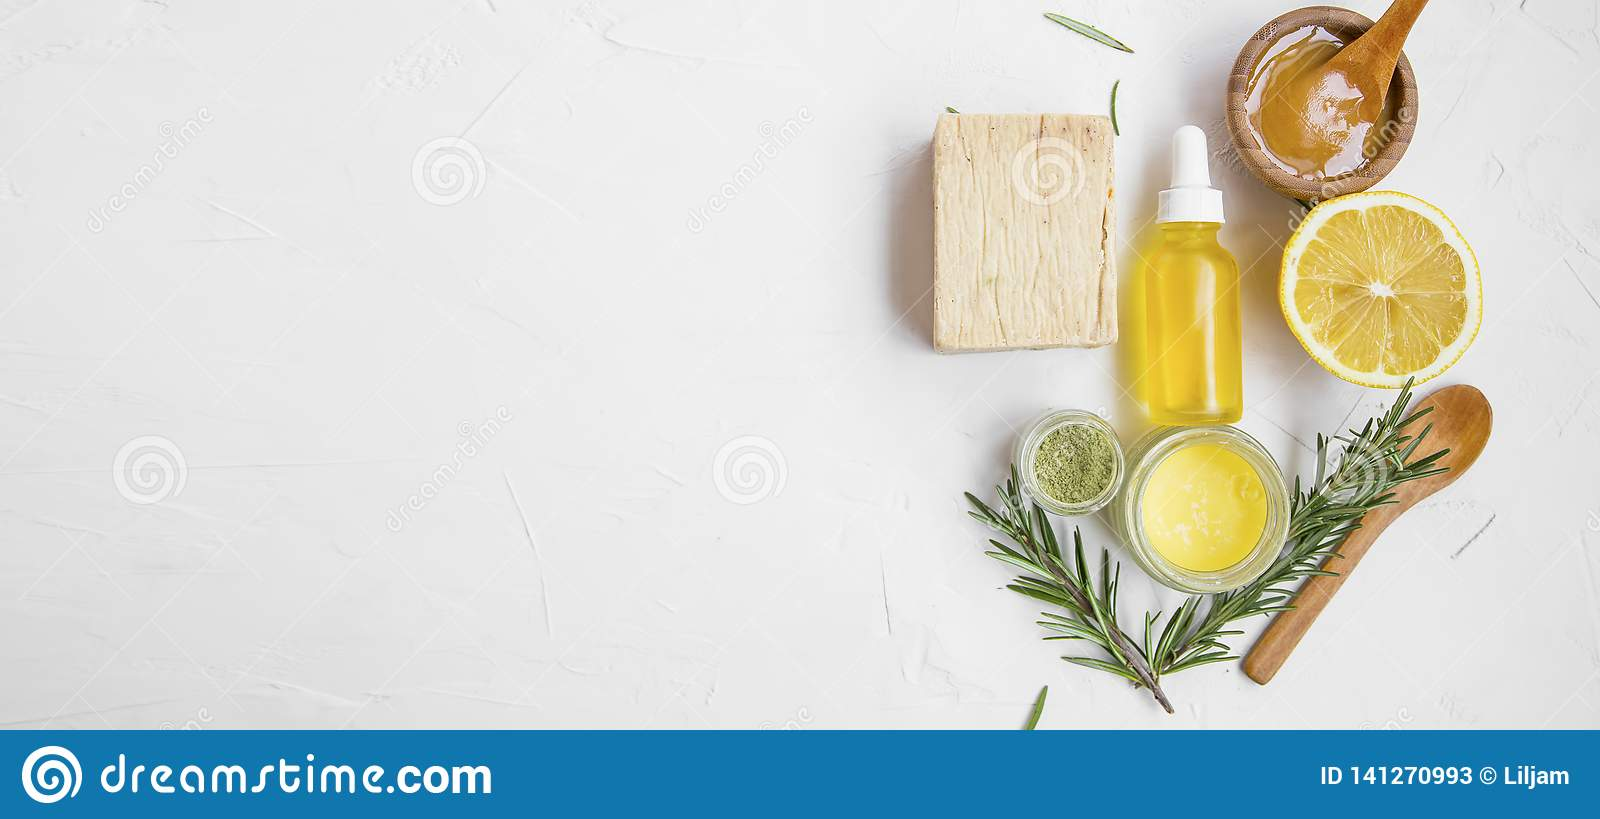 Natural Skincare Ingredients With Manuka Honey Lemon Essential Oil Clay Balm Rosemary Herbs And Natural Soap With Copy Space Stock Image Image Of Lotion Beauty 141270993